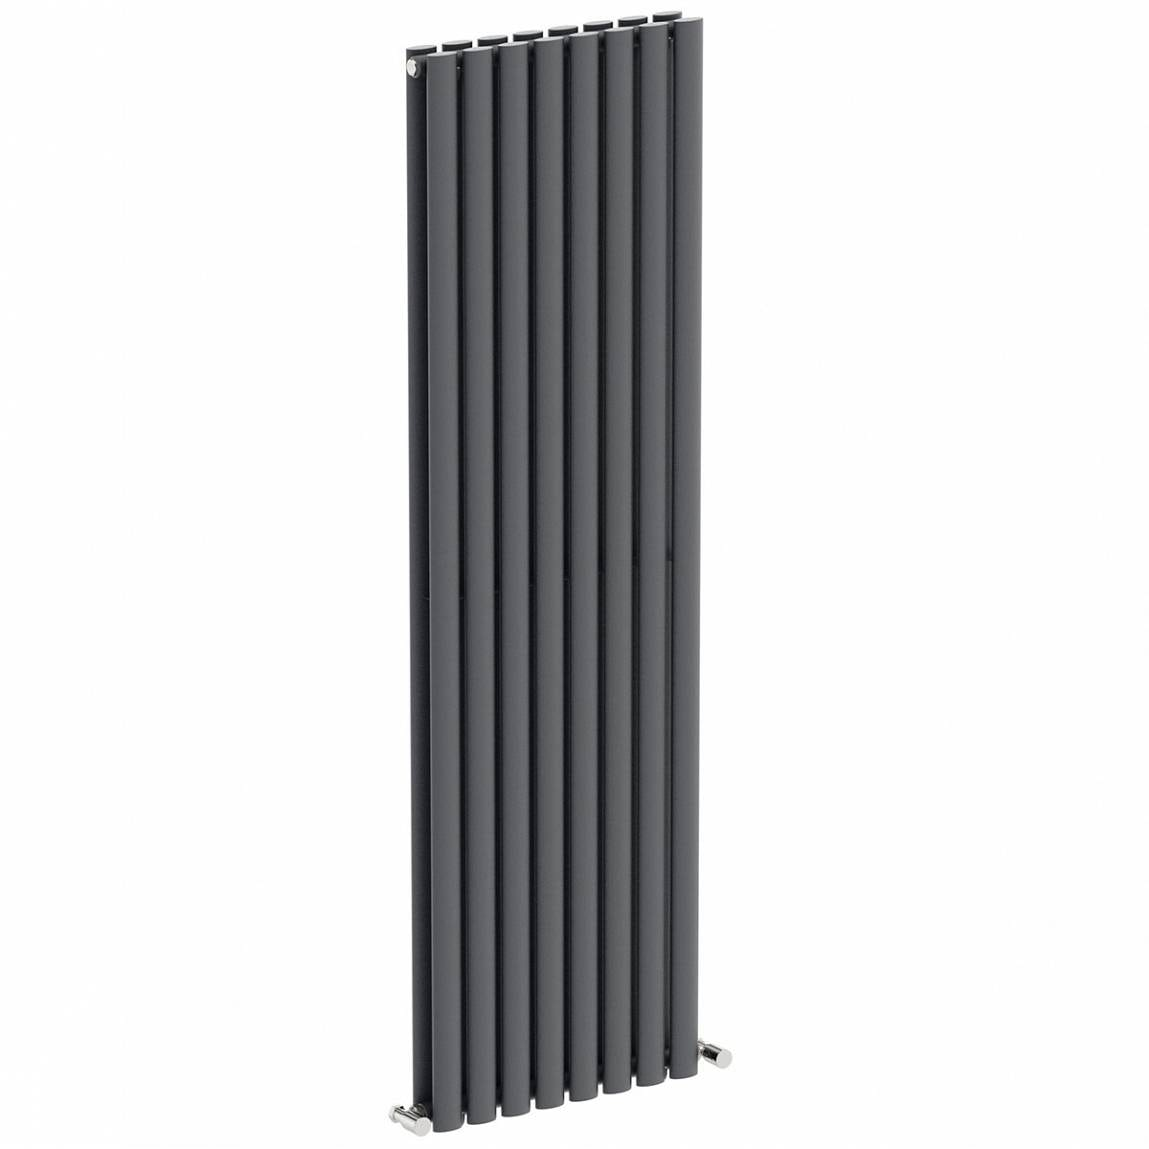 Mode Tate double radiator 1600 x 480 offer pack